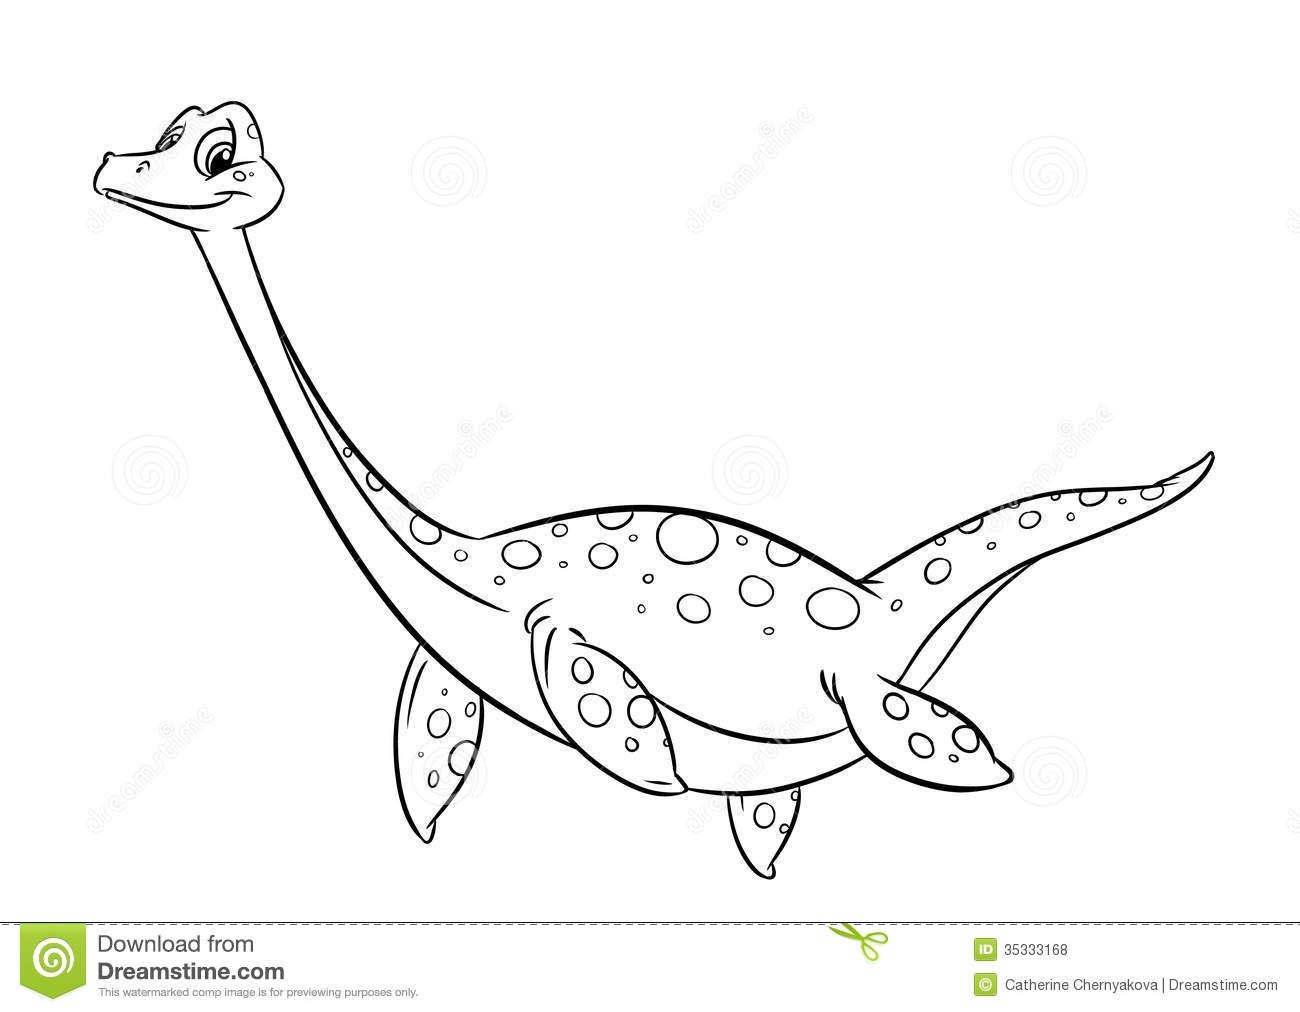 kindergarten coloring pages free - royalty free stock photos dinosaur coloring pages isolated illustration cartoon image